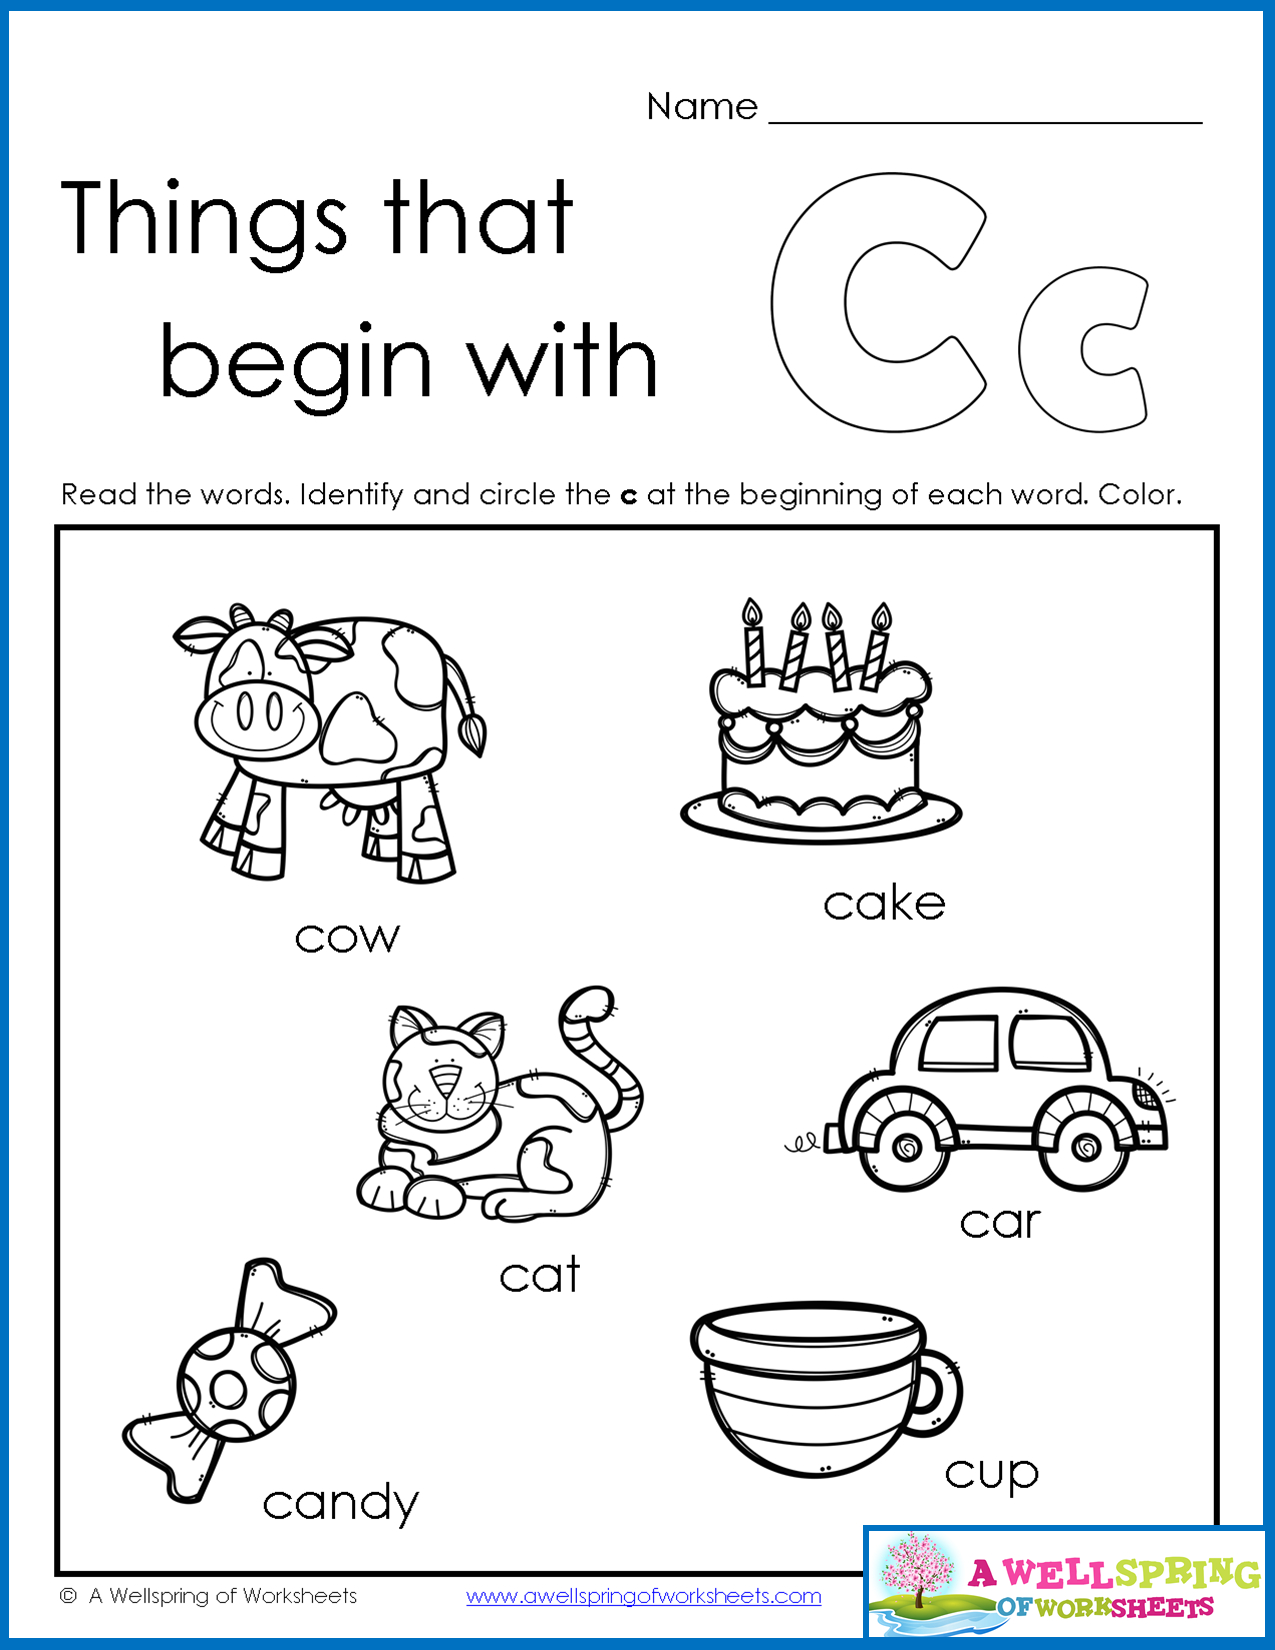 Things That Begin With A-Z Worksheets | Letter Worksheets with Reading A-Z Alphabet Worksheets